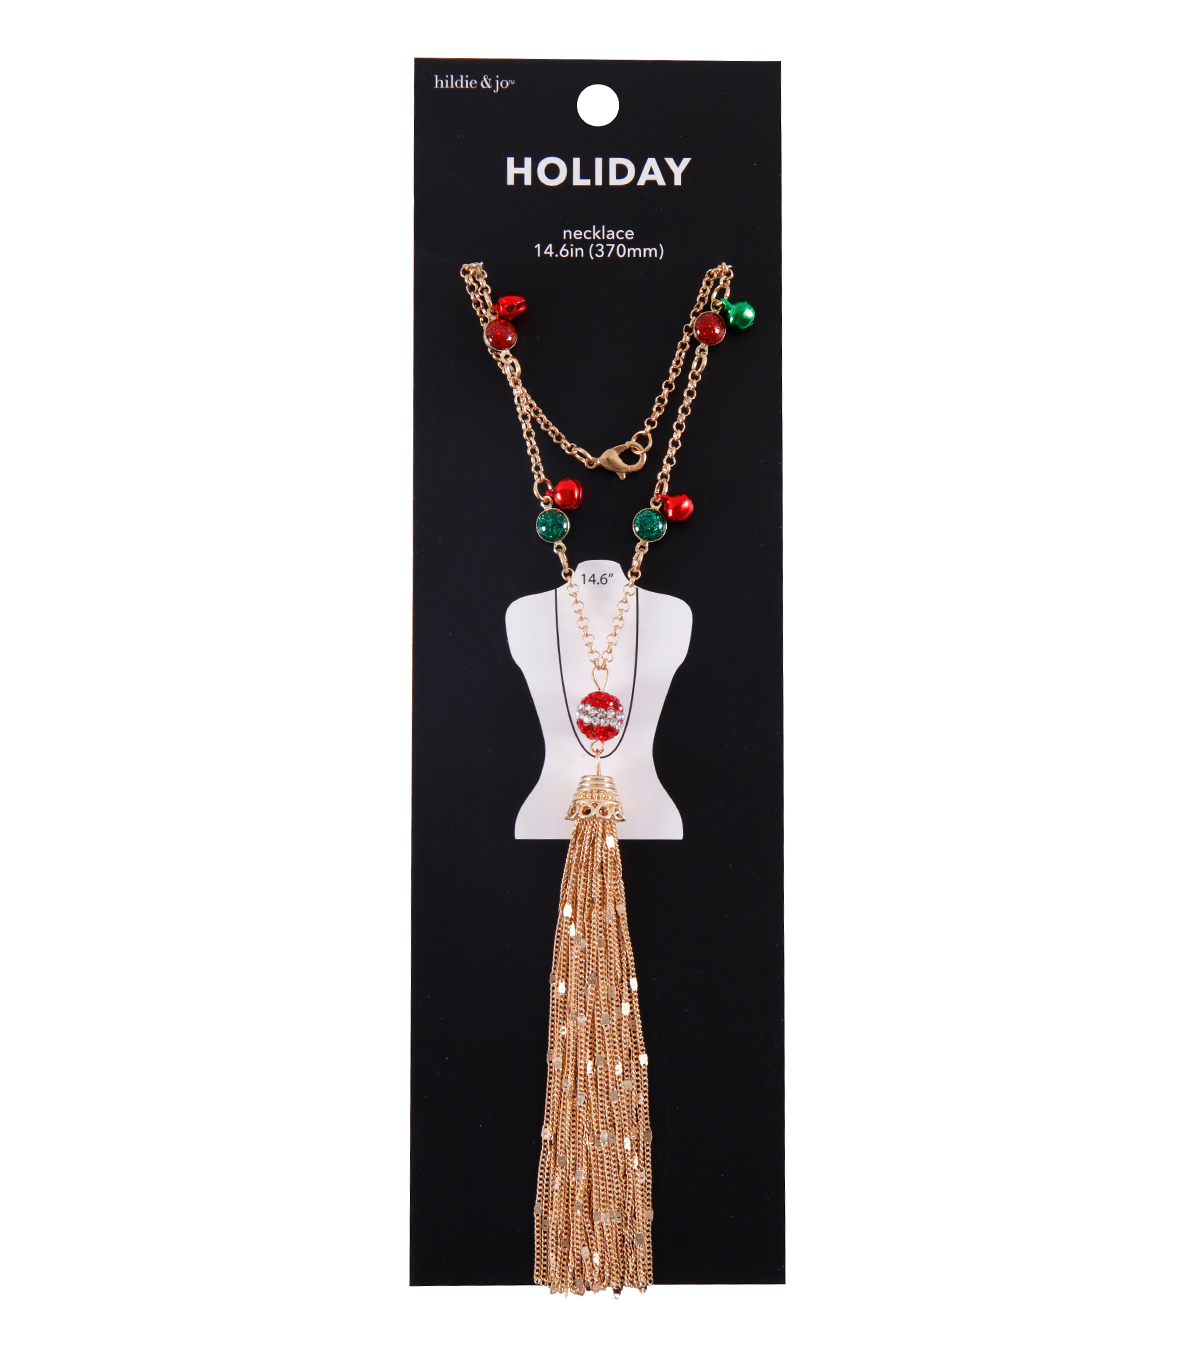 hildie & jo Christmas 14.6\u0027\u0027 Tassel Gold Necklace-Rhinestones & Bells